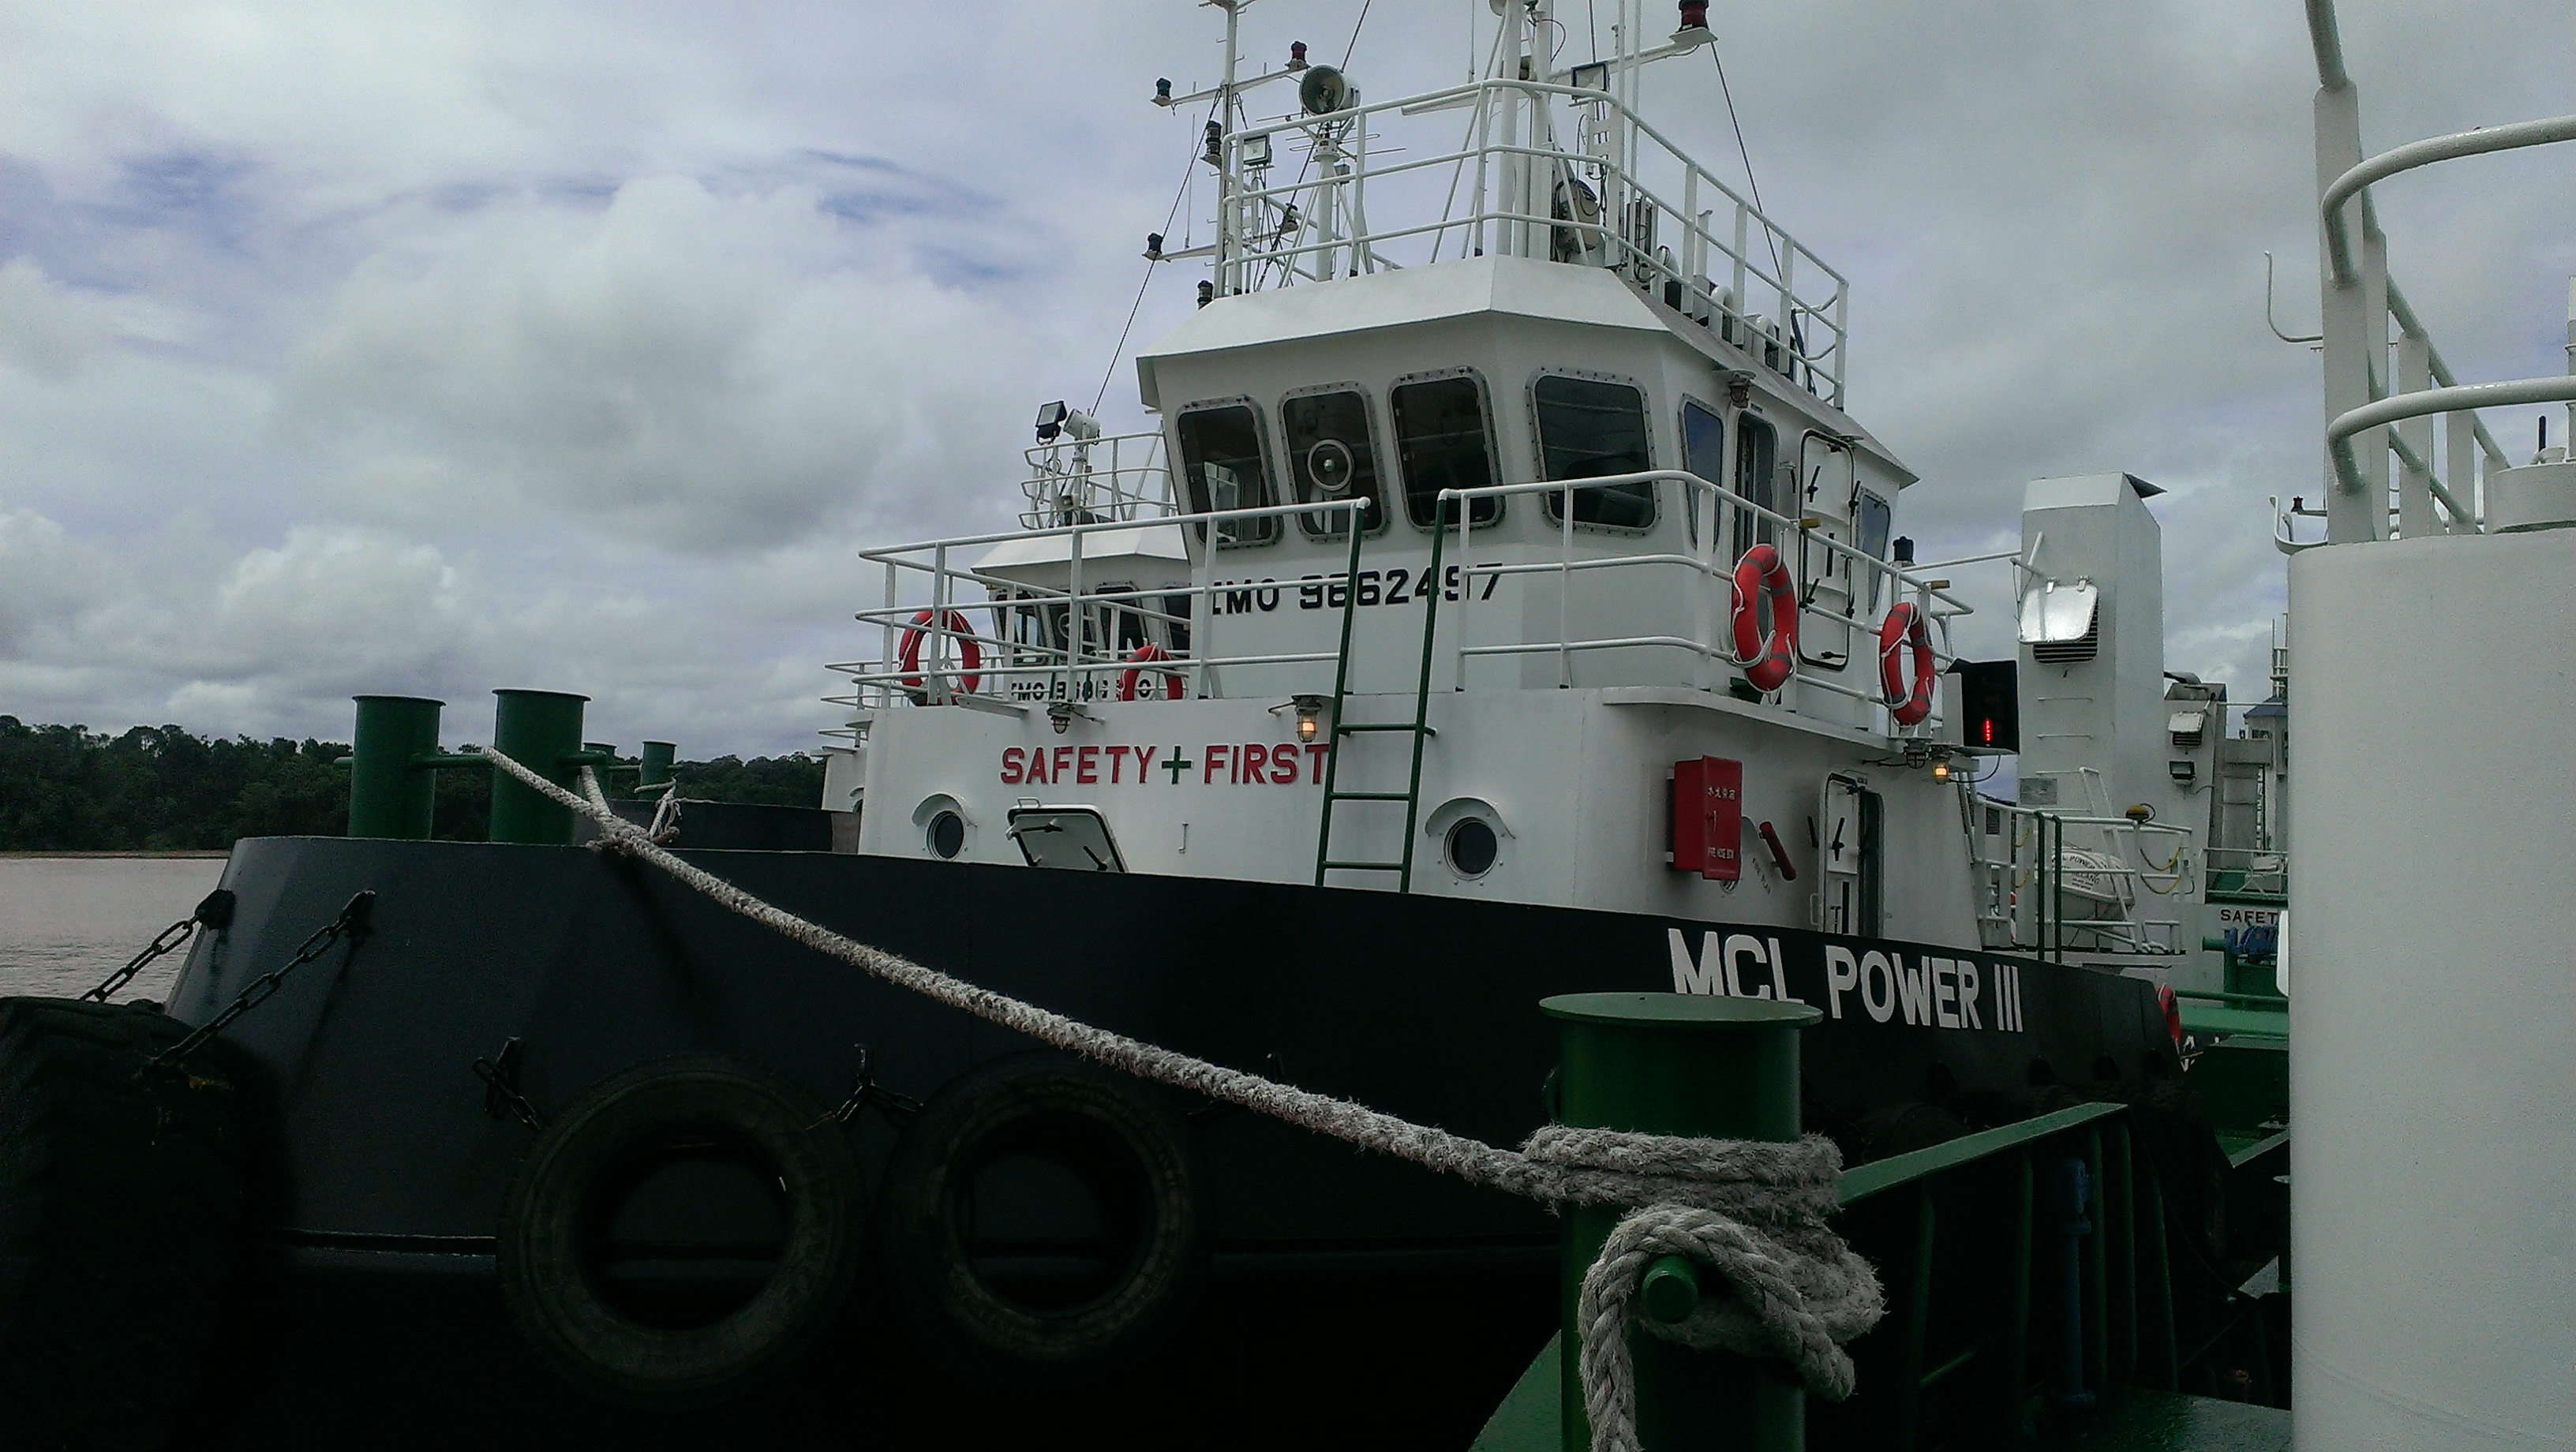 Tug Boats MCL Power III